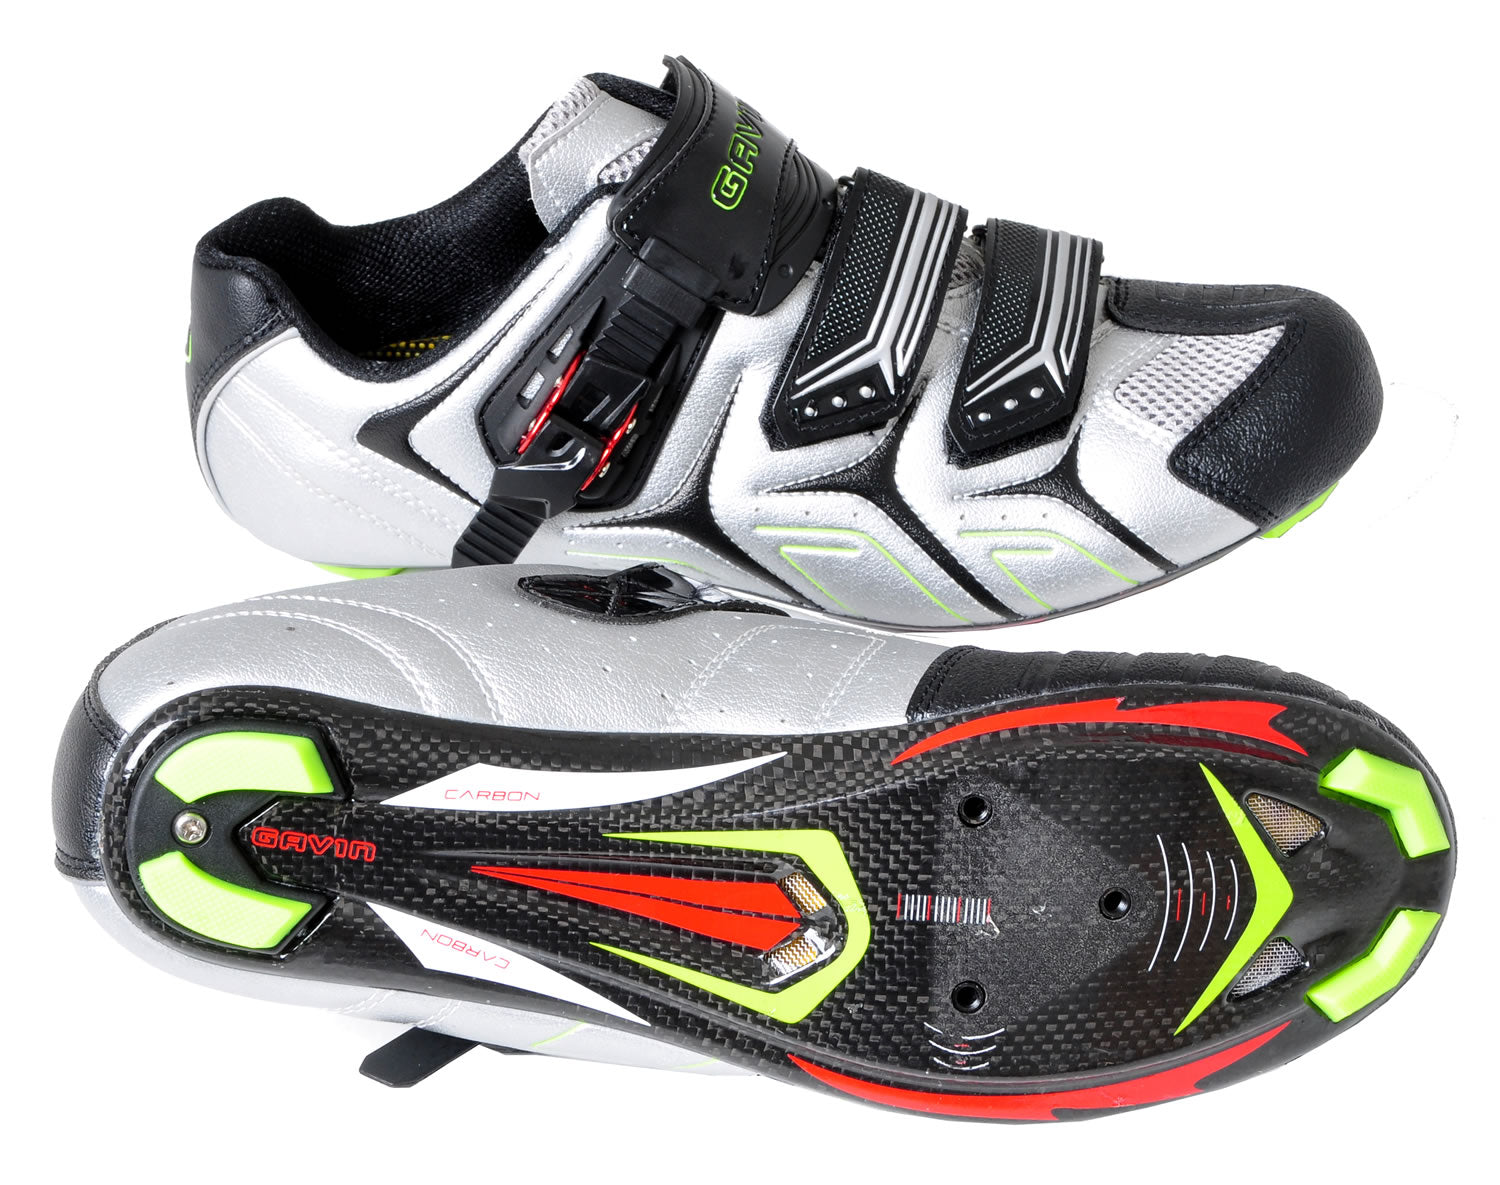 products/525-CARBON-SHOE__01_jpg.jpg